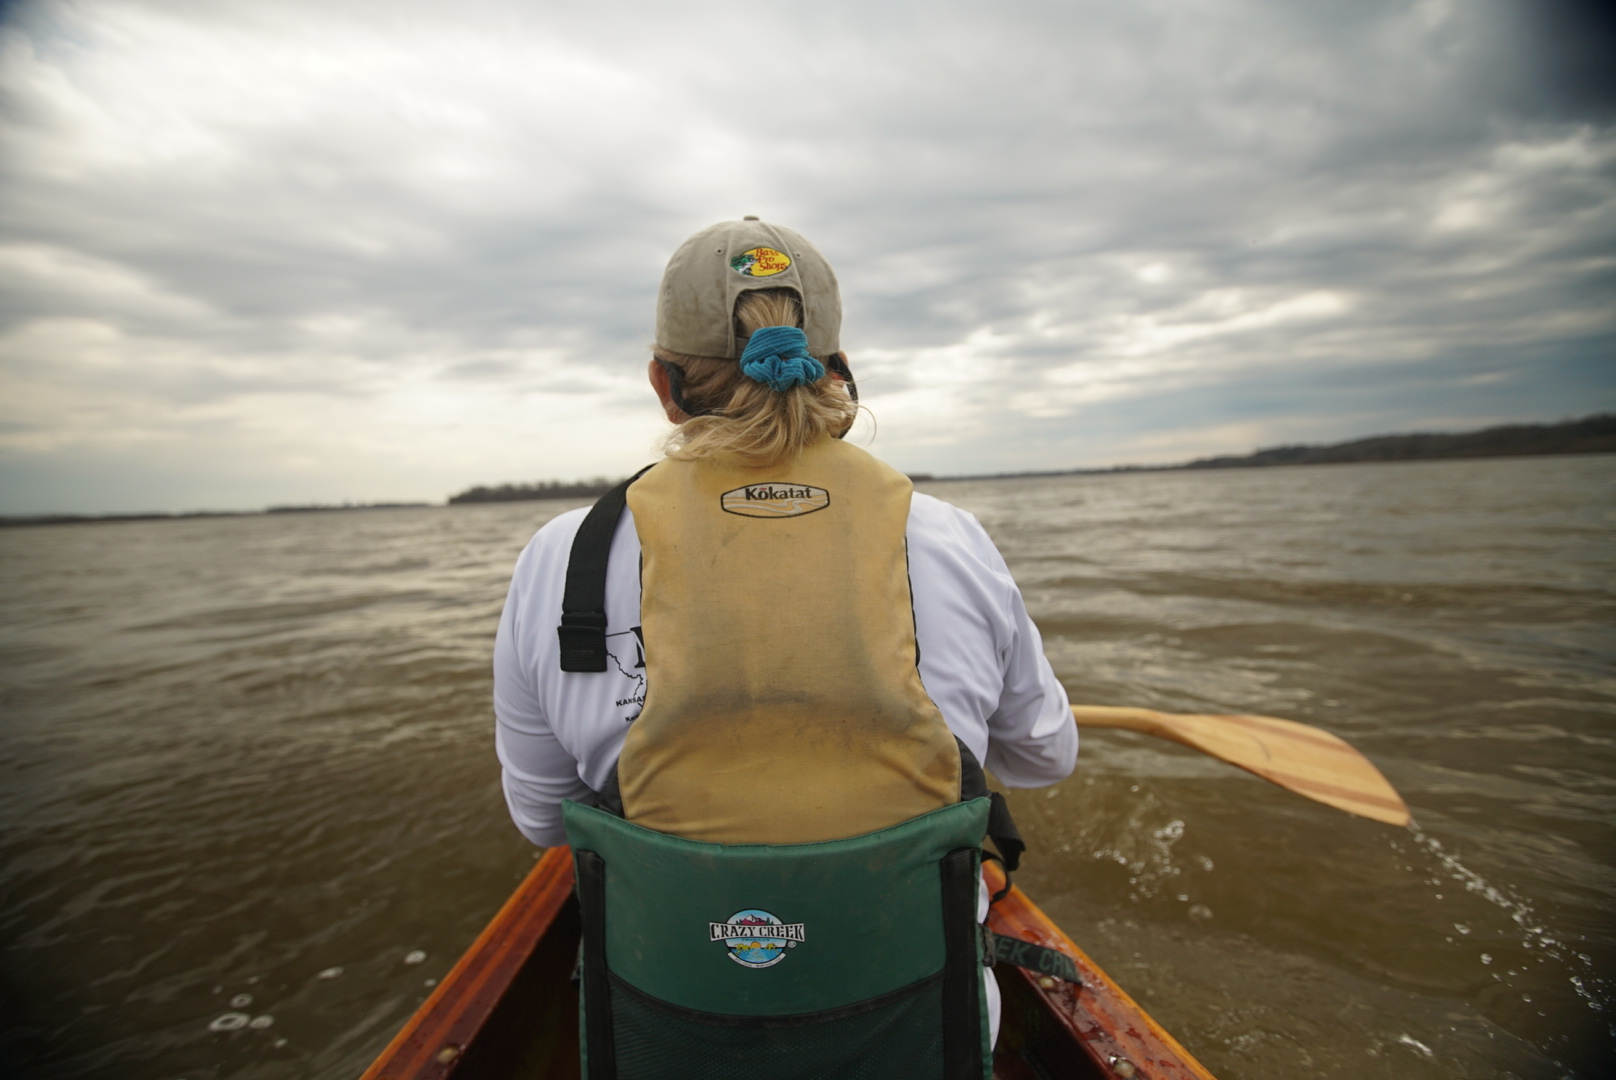 Paddling behind Janet Moreland, first female thru-paddler from source-to-sea Missouri/Mississippi to the Gulf.